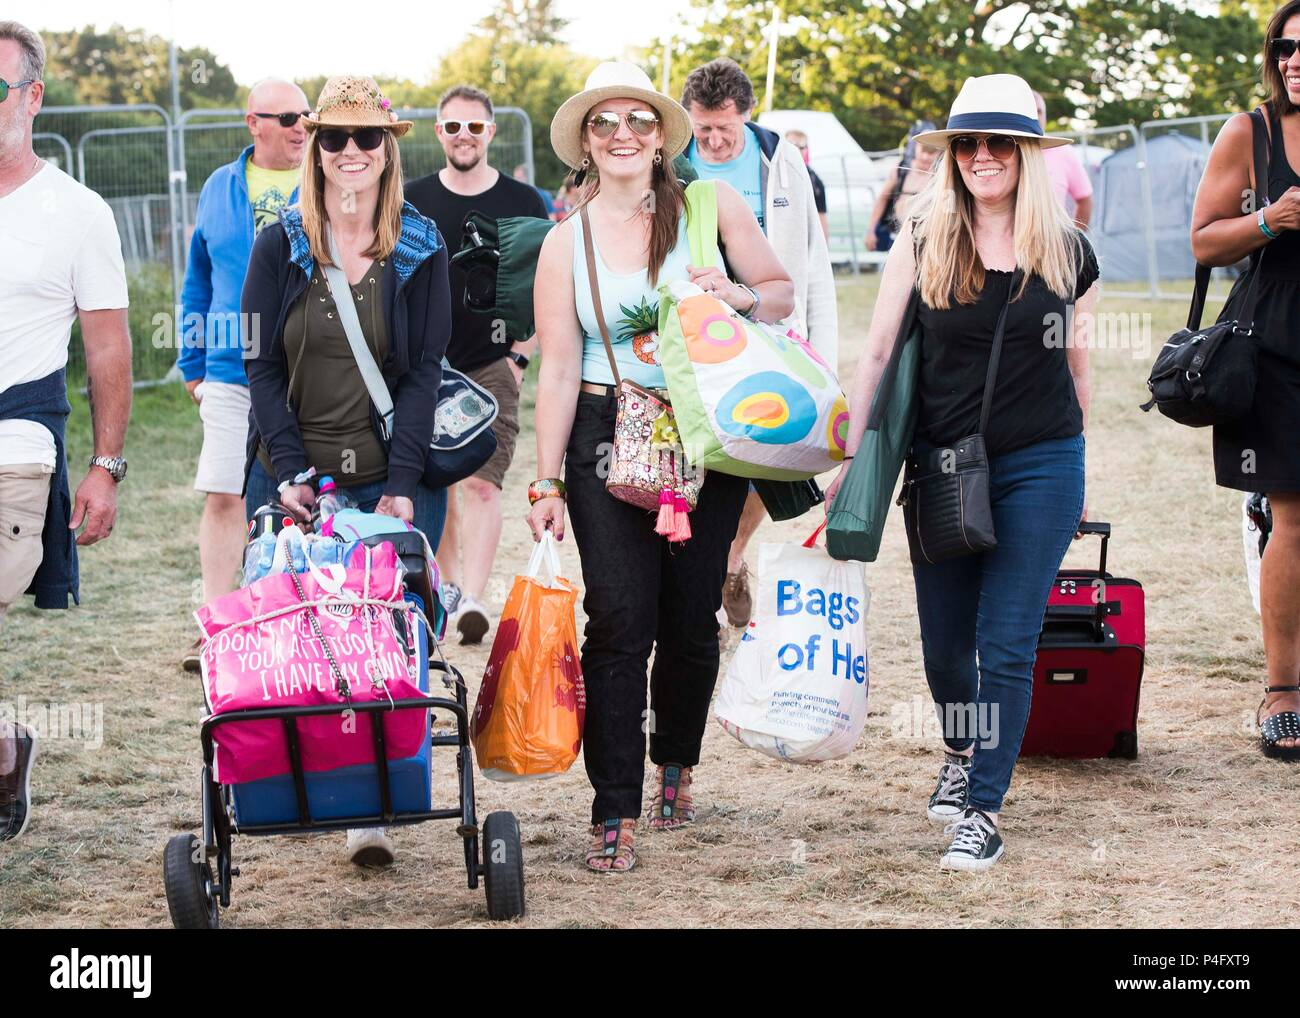 Kelly Connolly, Ley Tresadern, and Jayne Newman from London arrive on site at the Isle of Wight festival at Seaclose Park, Newport. Stock Photo